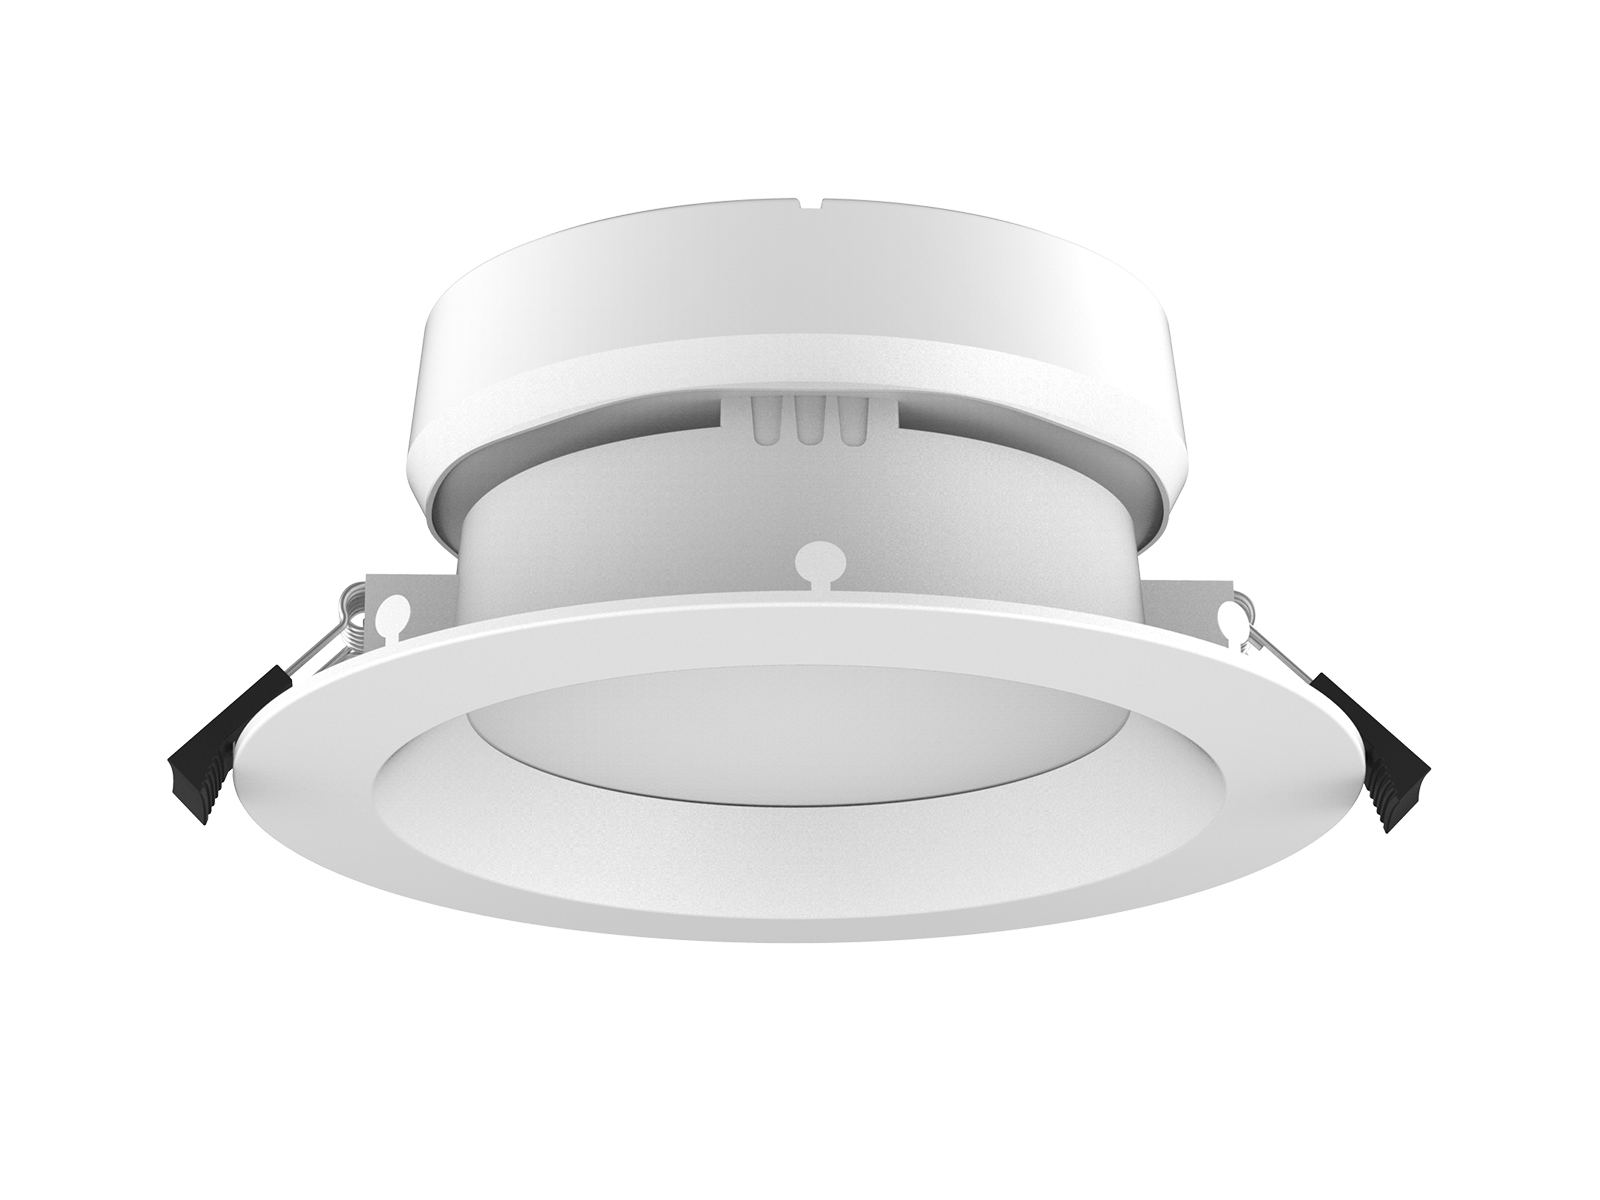 DL108 LED Downlight